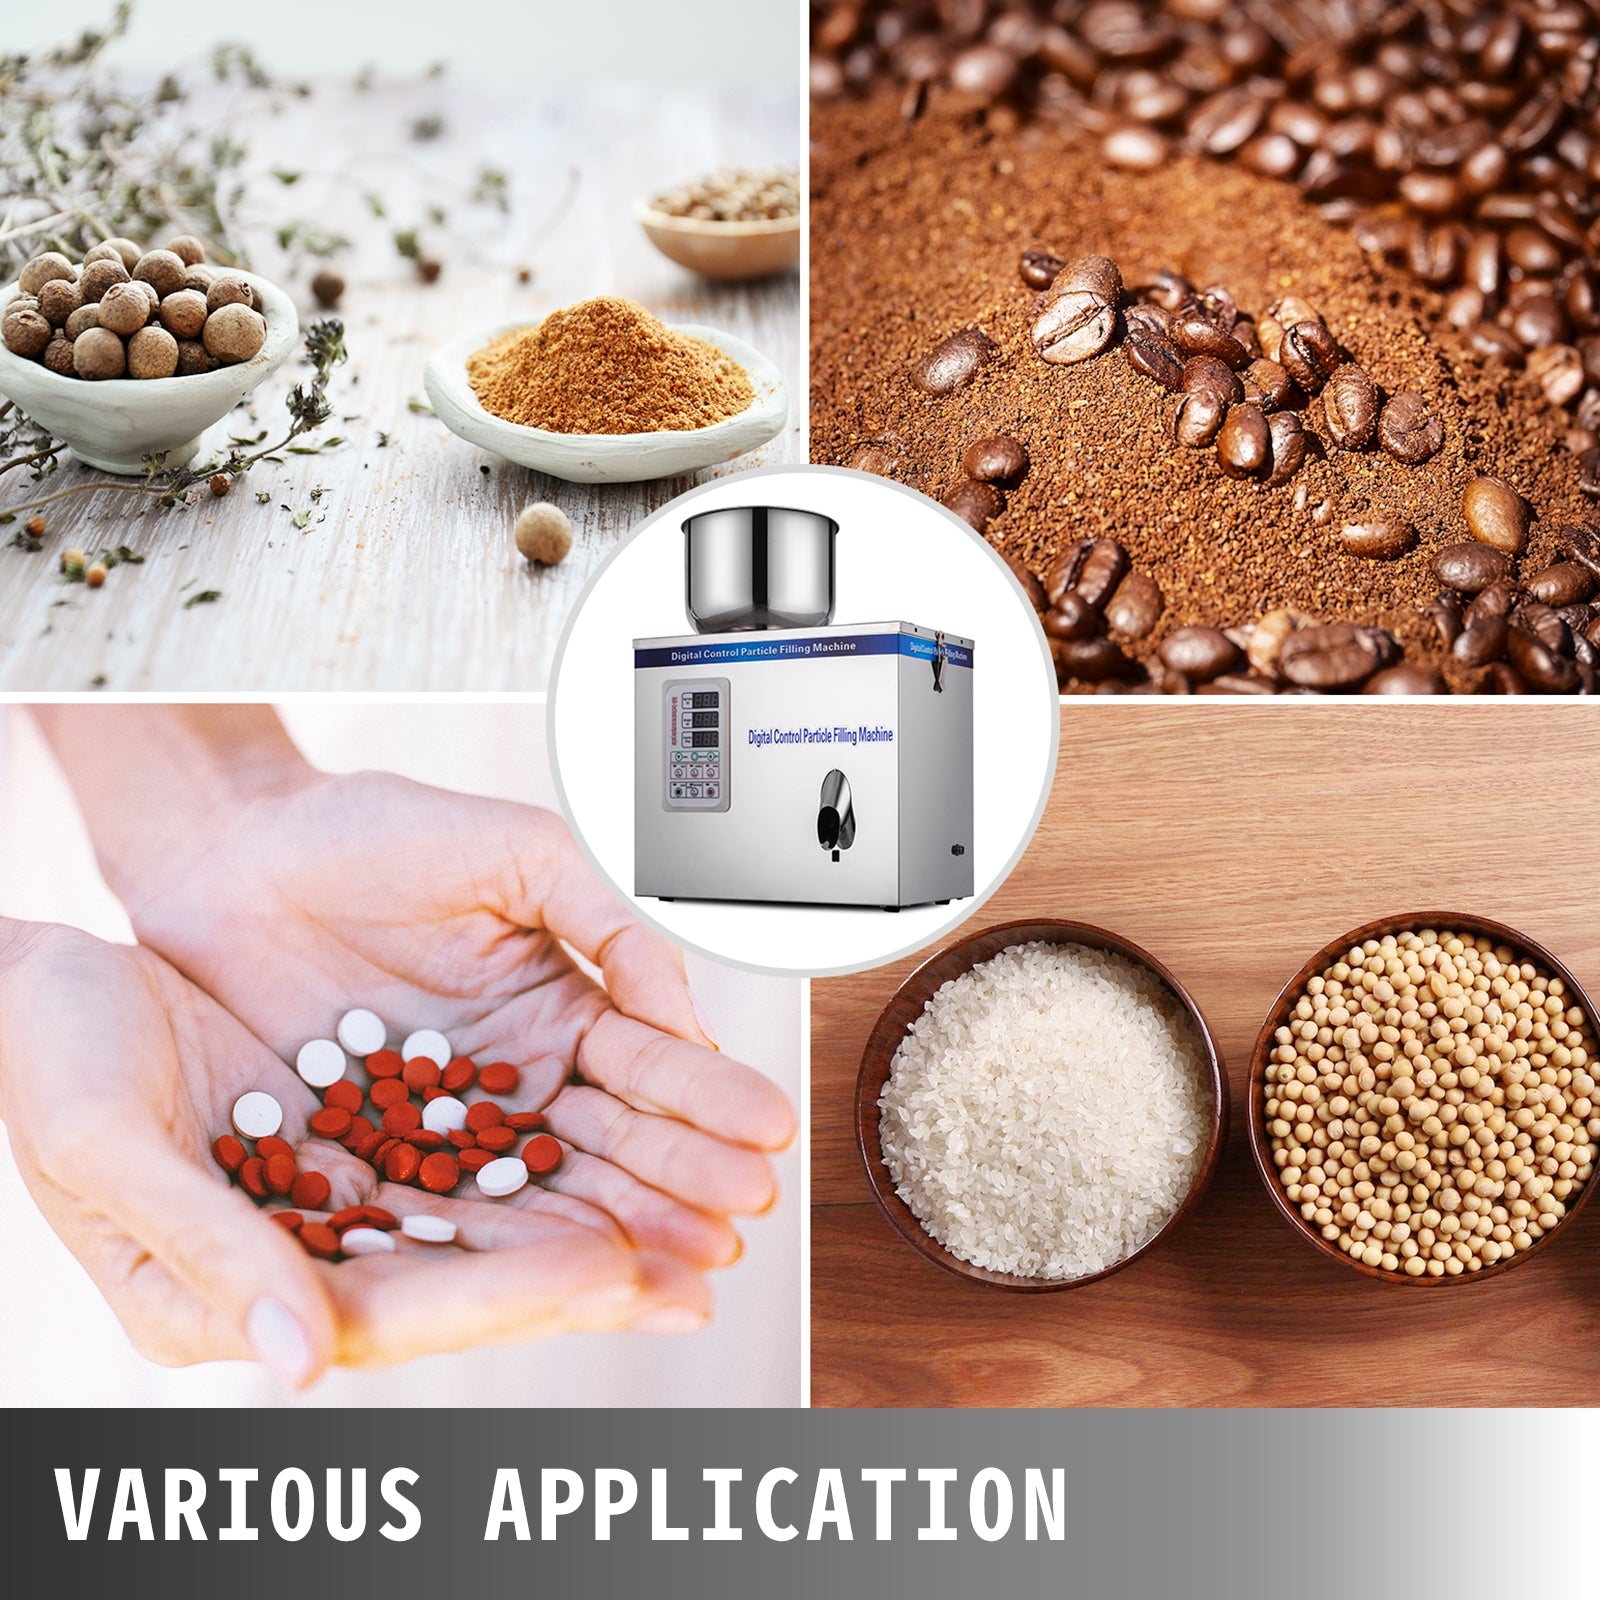 1-25g Particle Powder Subpackage Filling Machine Device Spice Grain Seed 180w